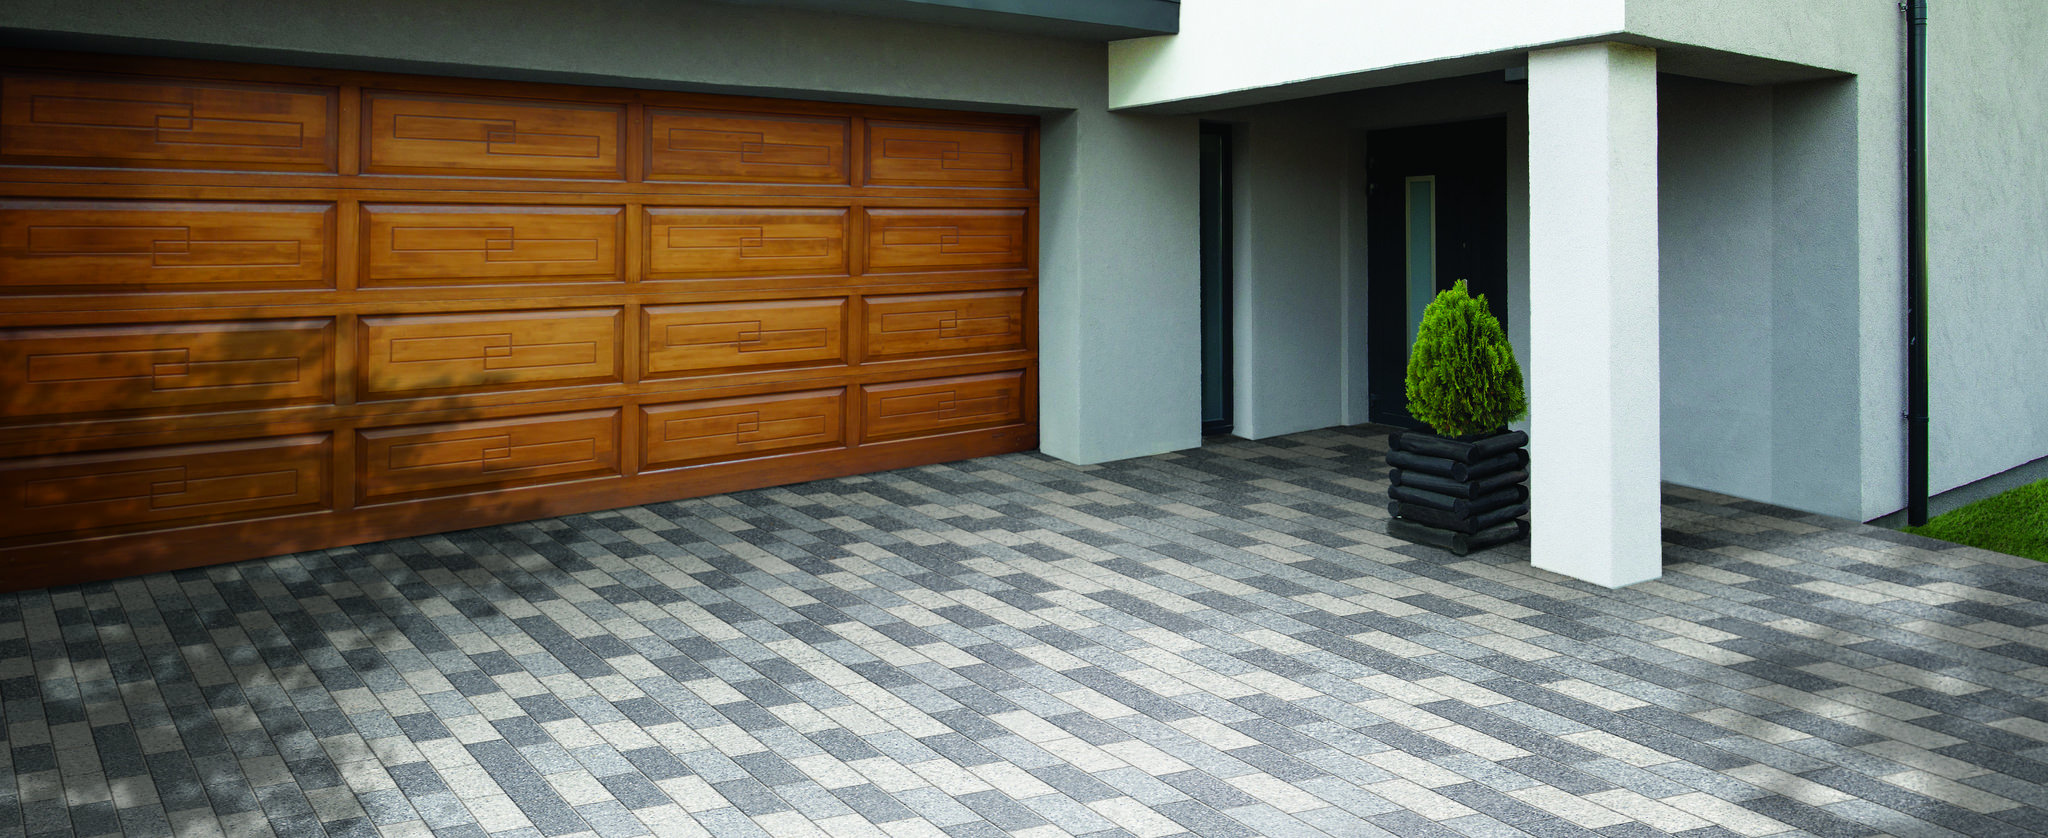 Stonemaster Block Paving Mixed Sizes